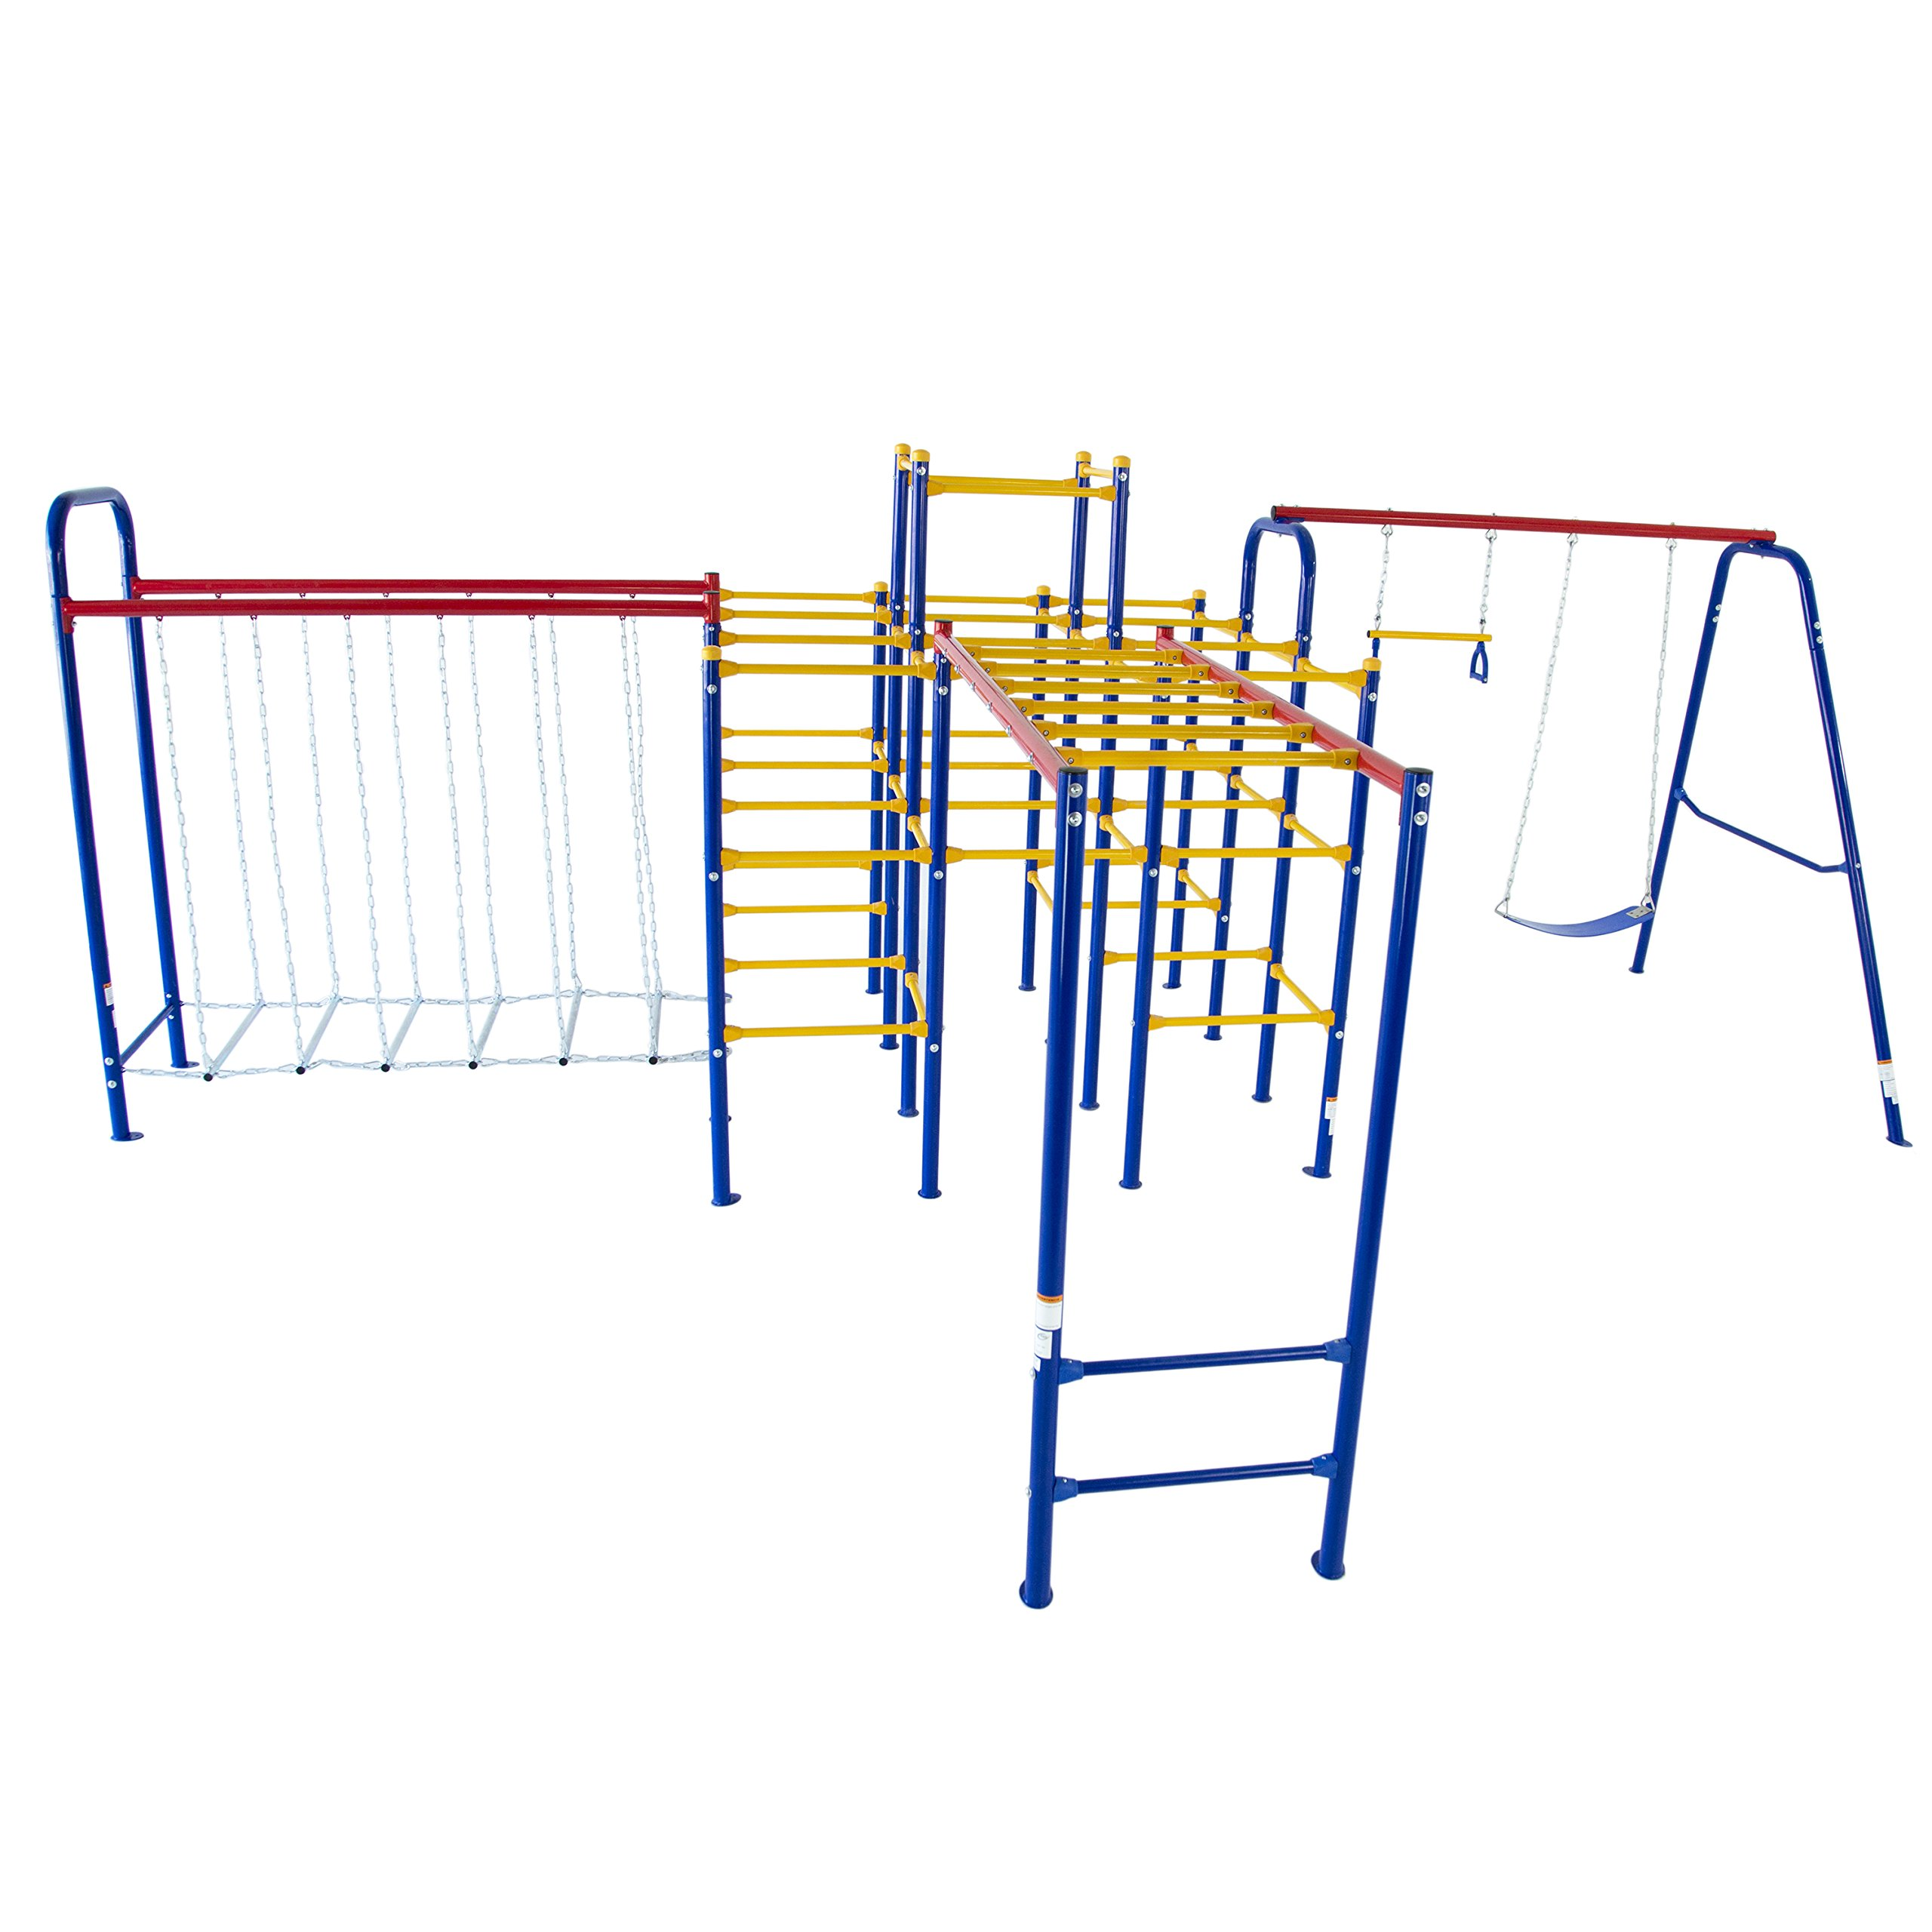 Skywalker Sports Jungle Gym Combo Complete with Jungle Gym/Swing Set/Hanging Bridge and Monkey Bars by Skywalker Sports